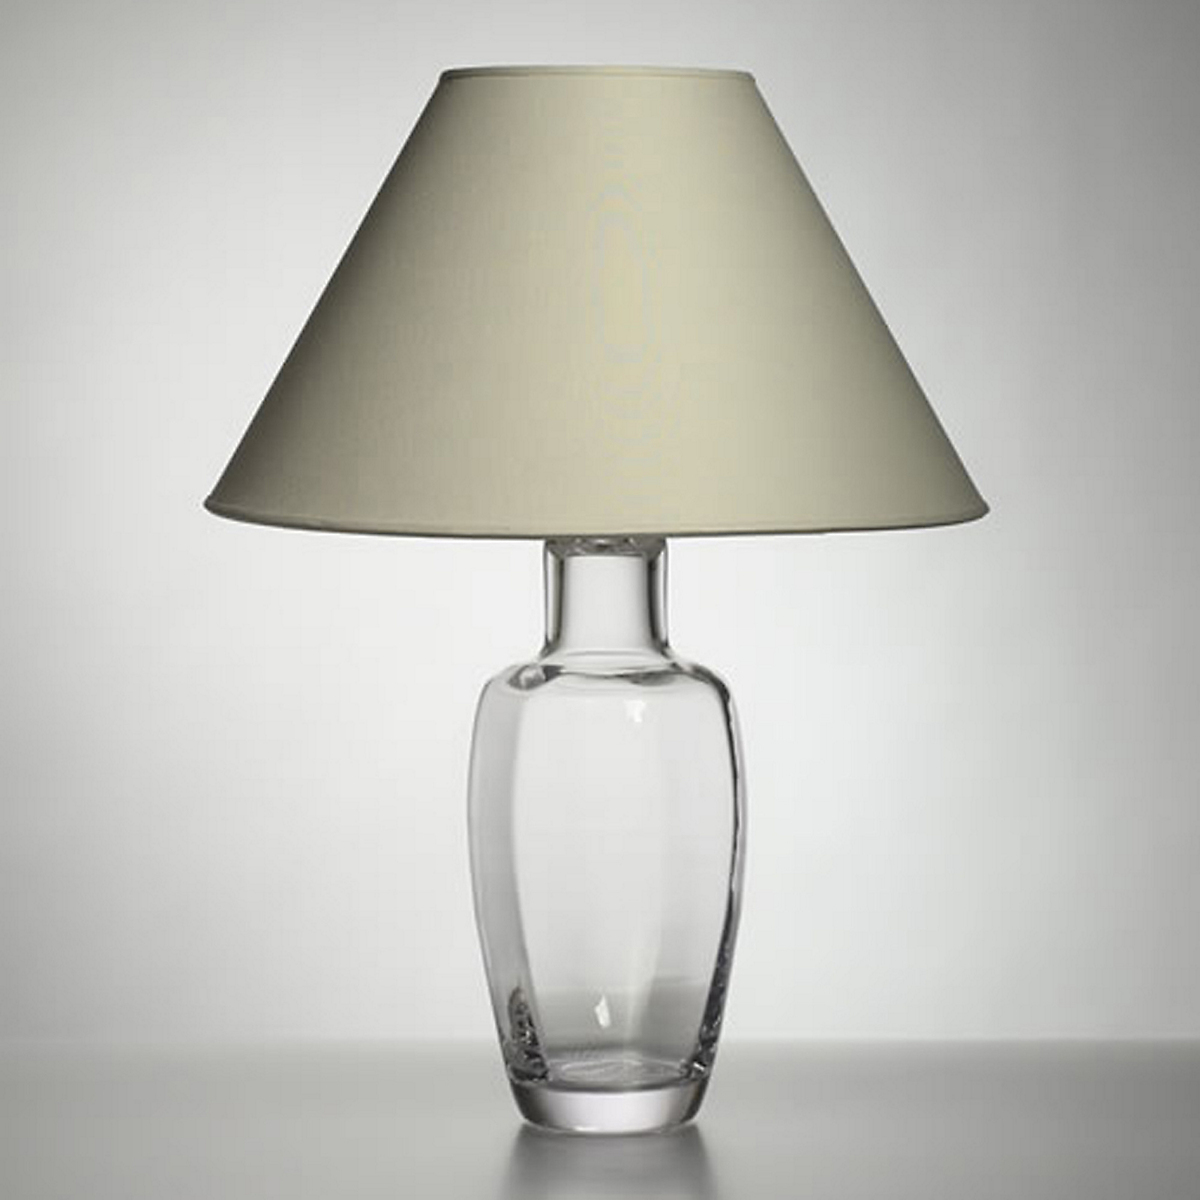 Simon Pearce Fairlee Table Lamp, Tall